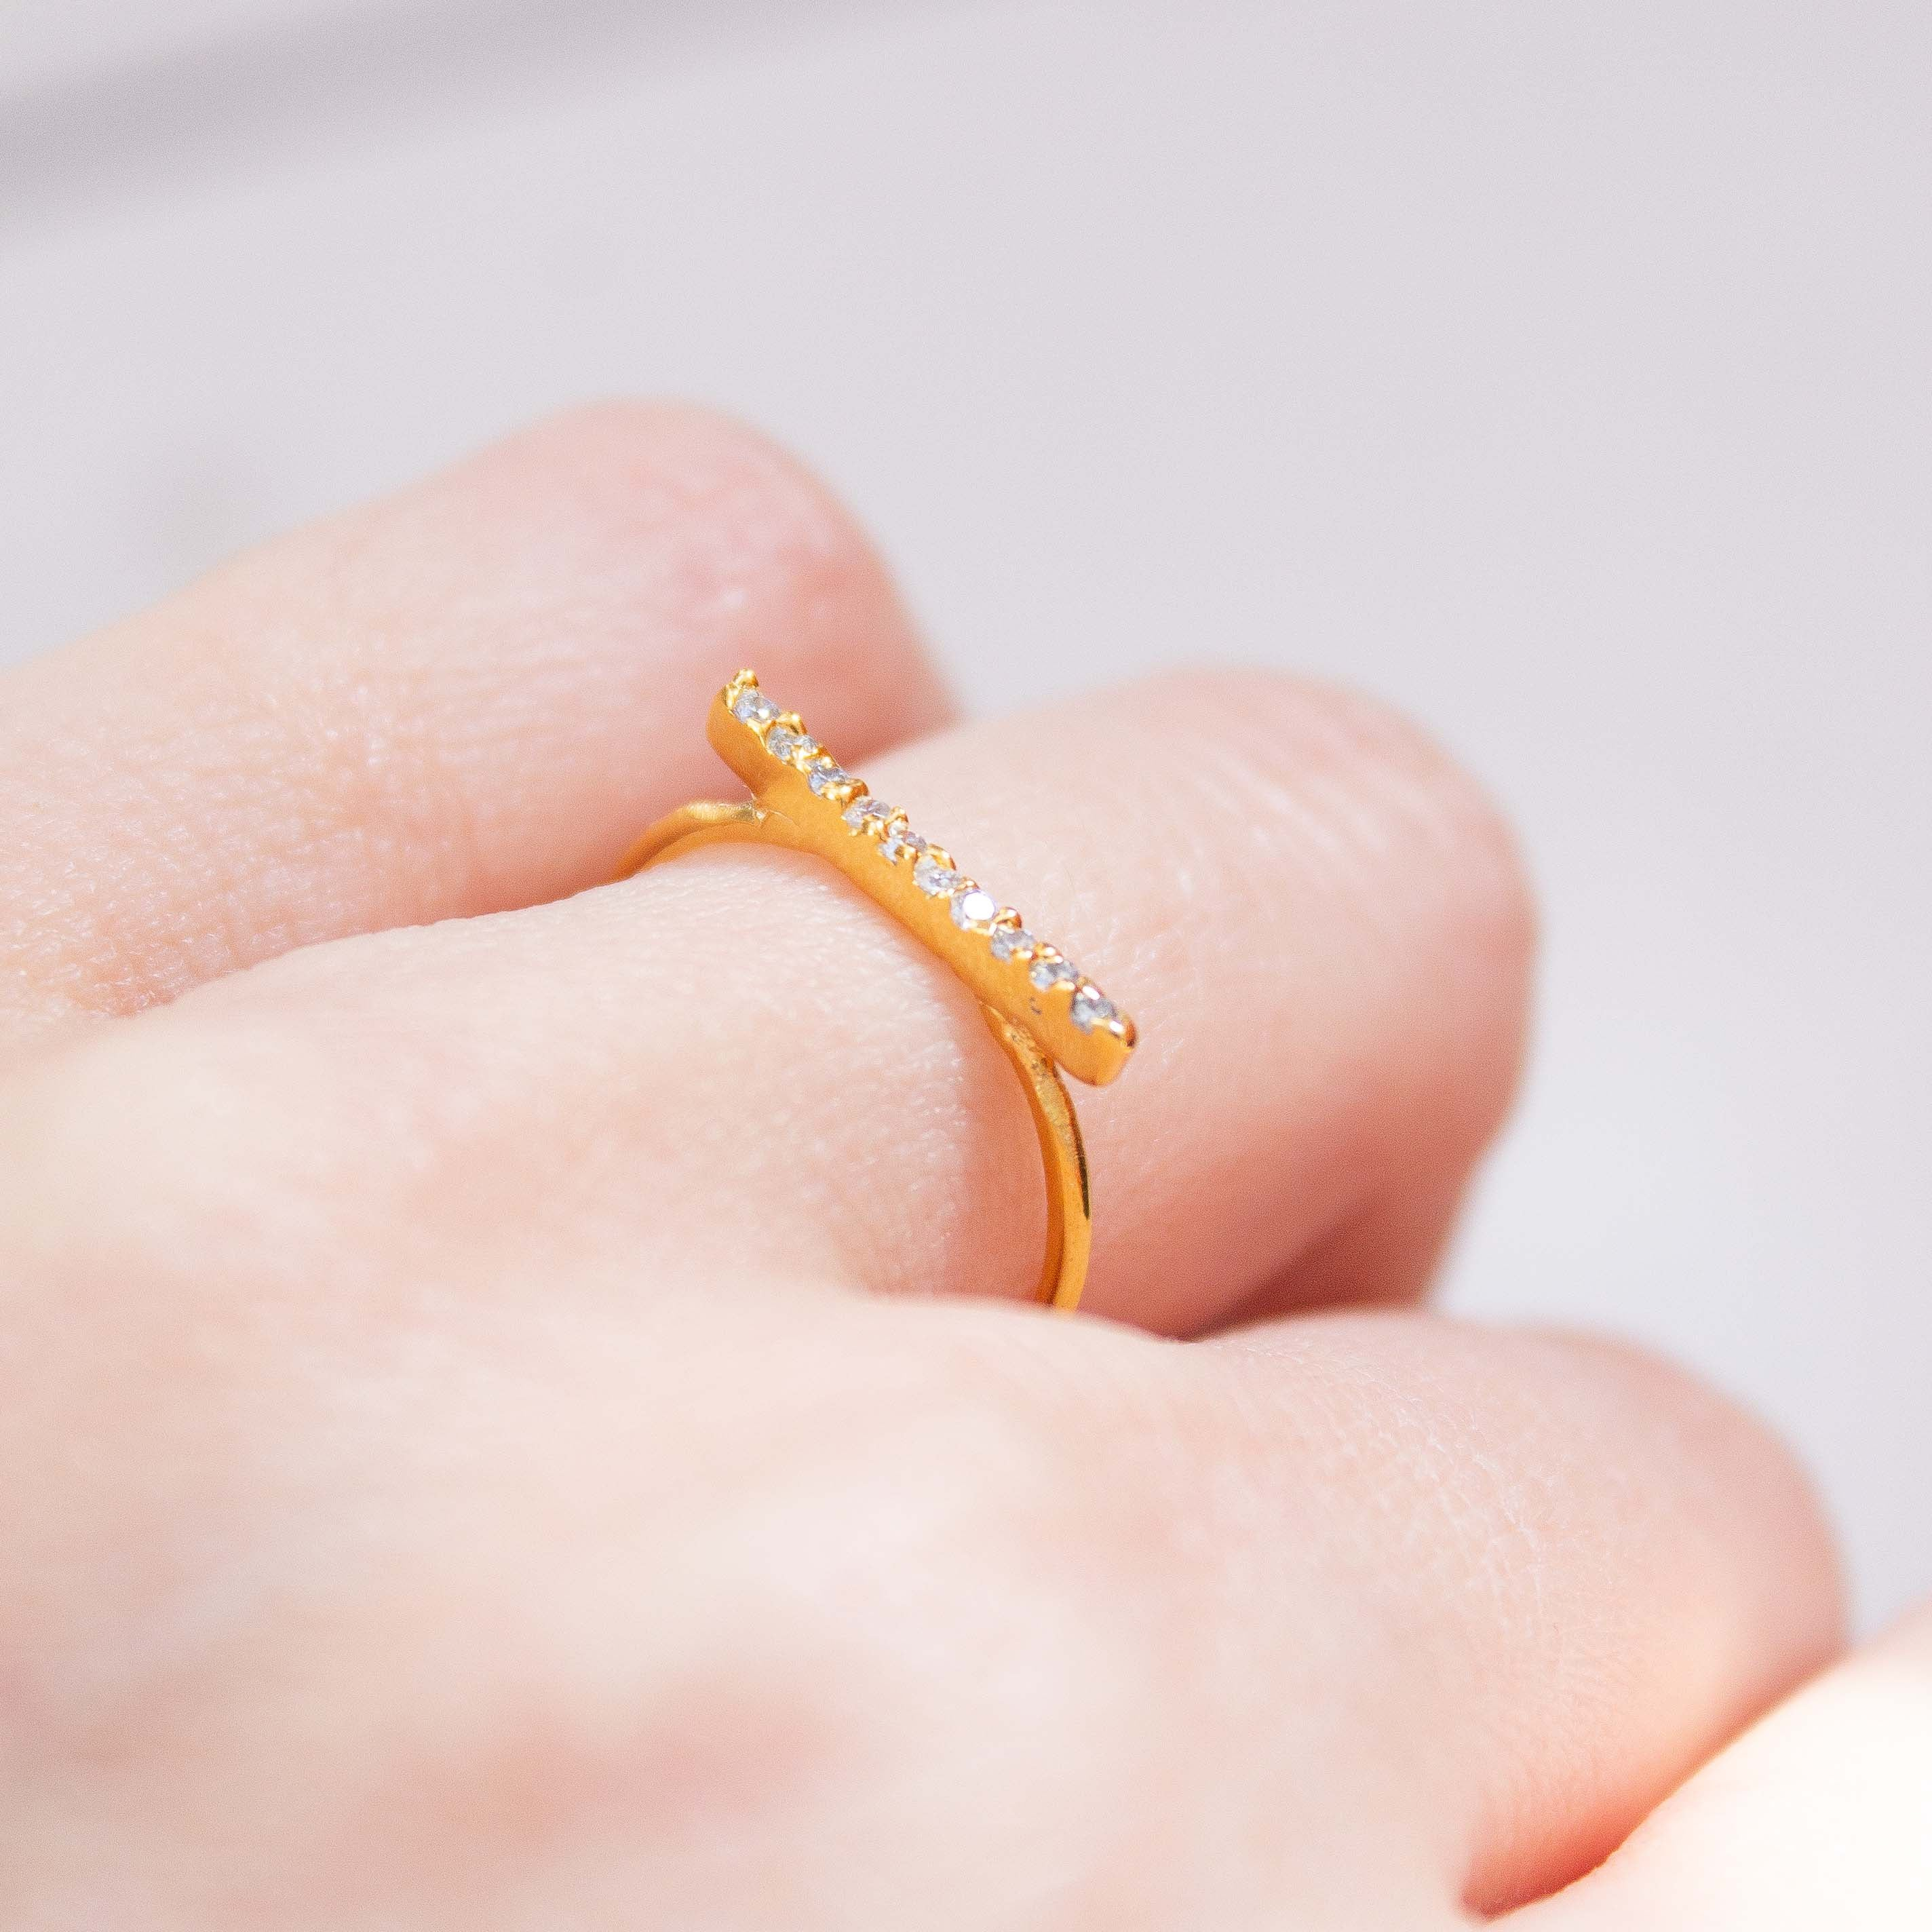 pico_jewellery_vermeil_stacking_pave_line_minimal_ring